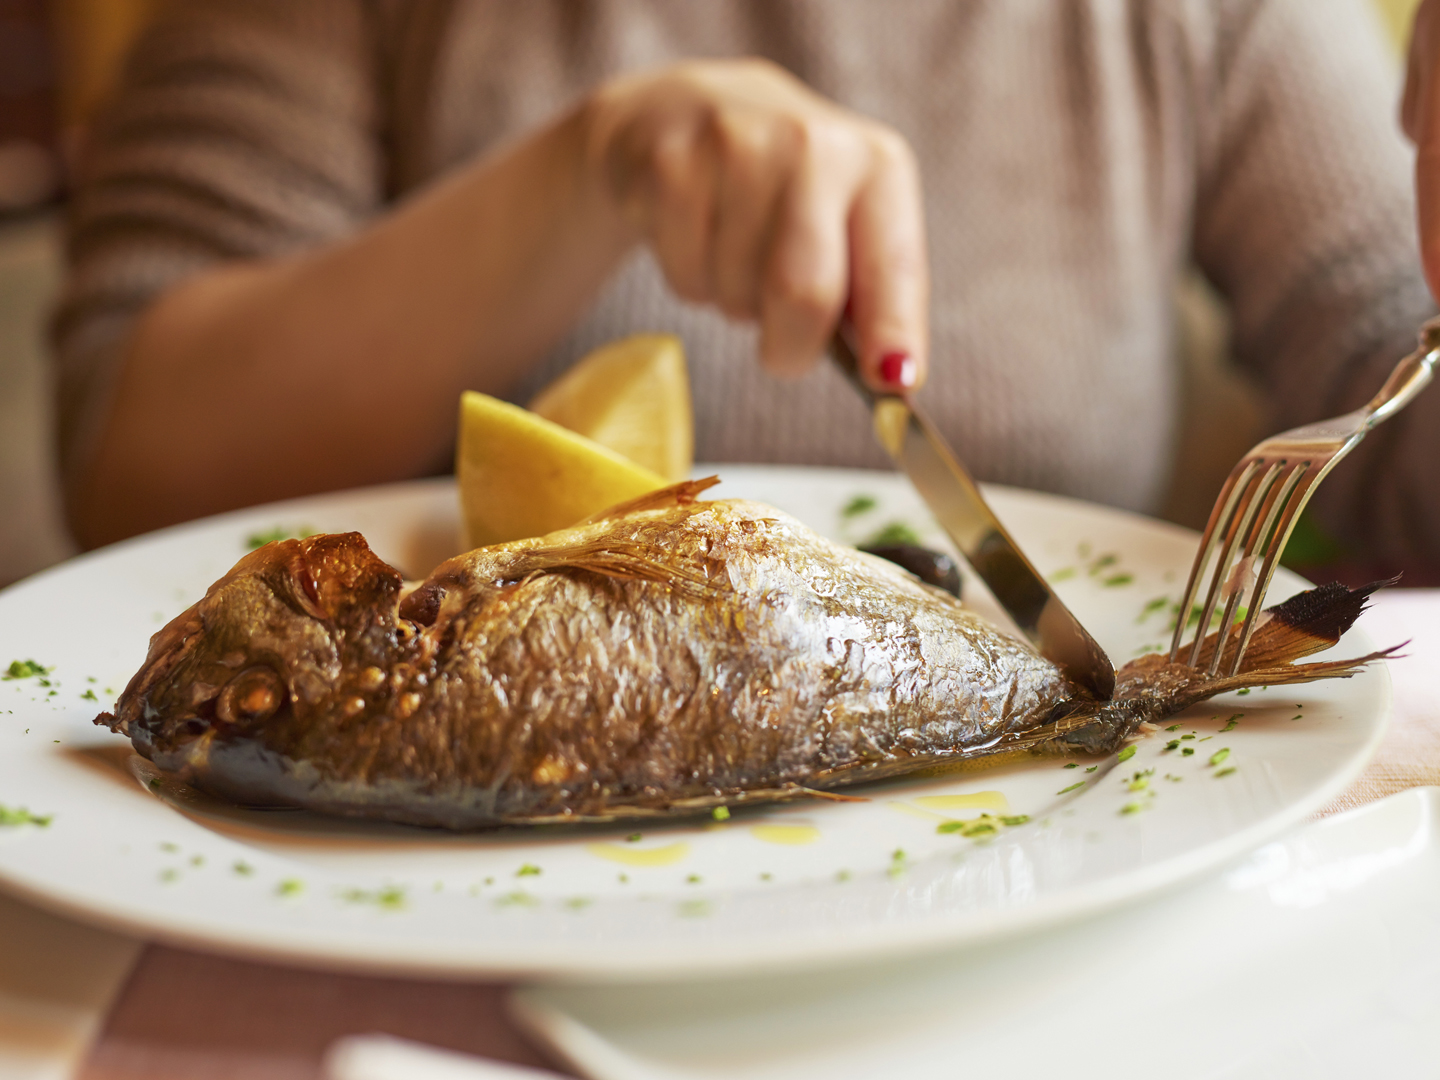 What fish should I avoid while pregnant? - Ask Doctor K